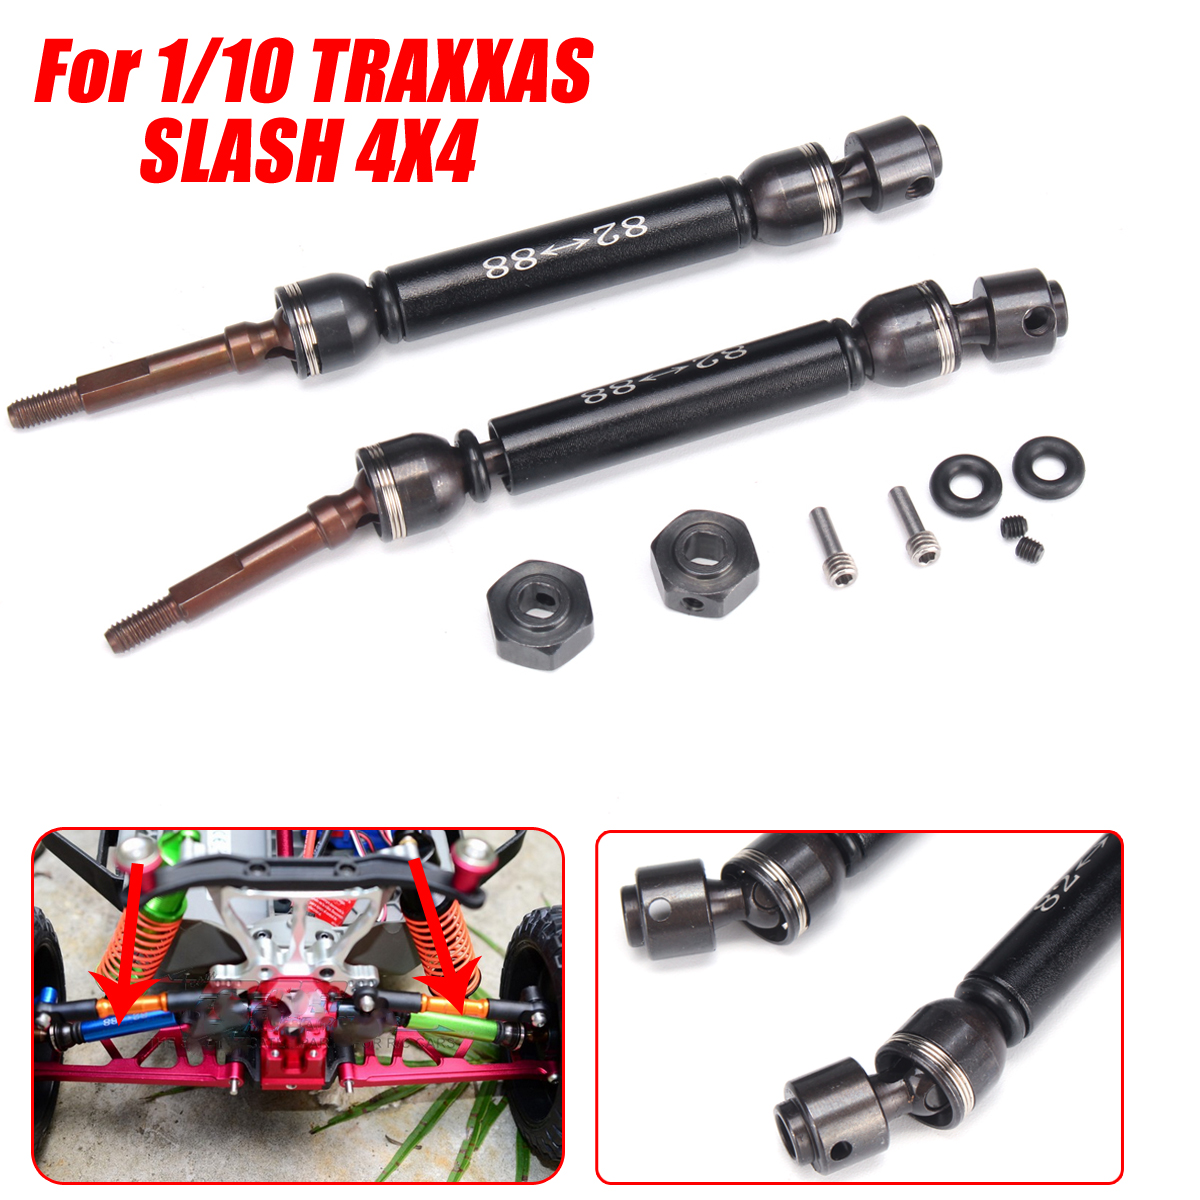 2Pcs RC Car CVD Rear Drive Shaft for Traxxas 1/10 Slash 4x4 Remote Control Car Aluminum Alloy Upgrade Part steel drive shaft joint cvd 110 155mm